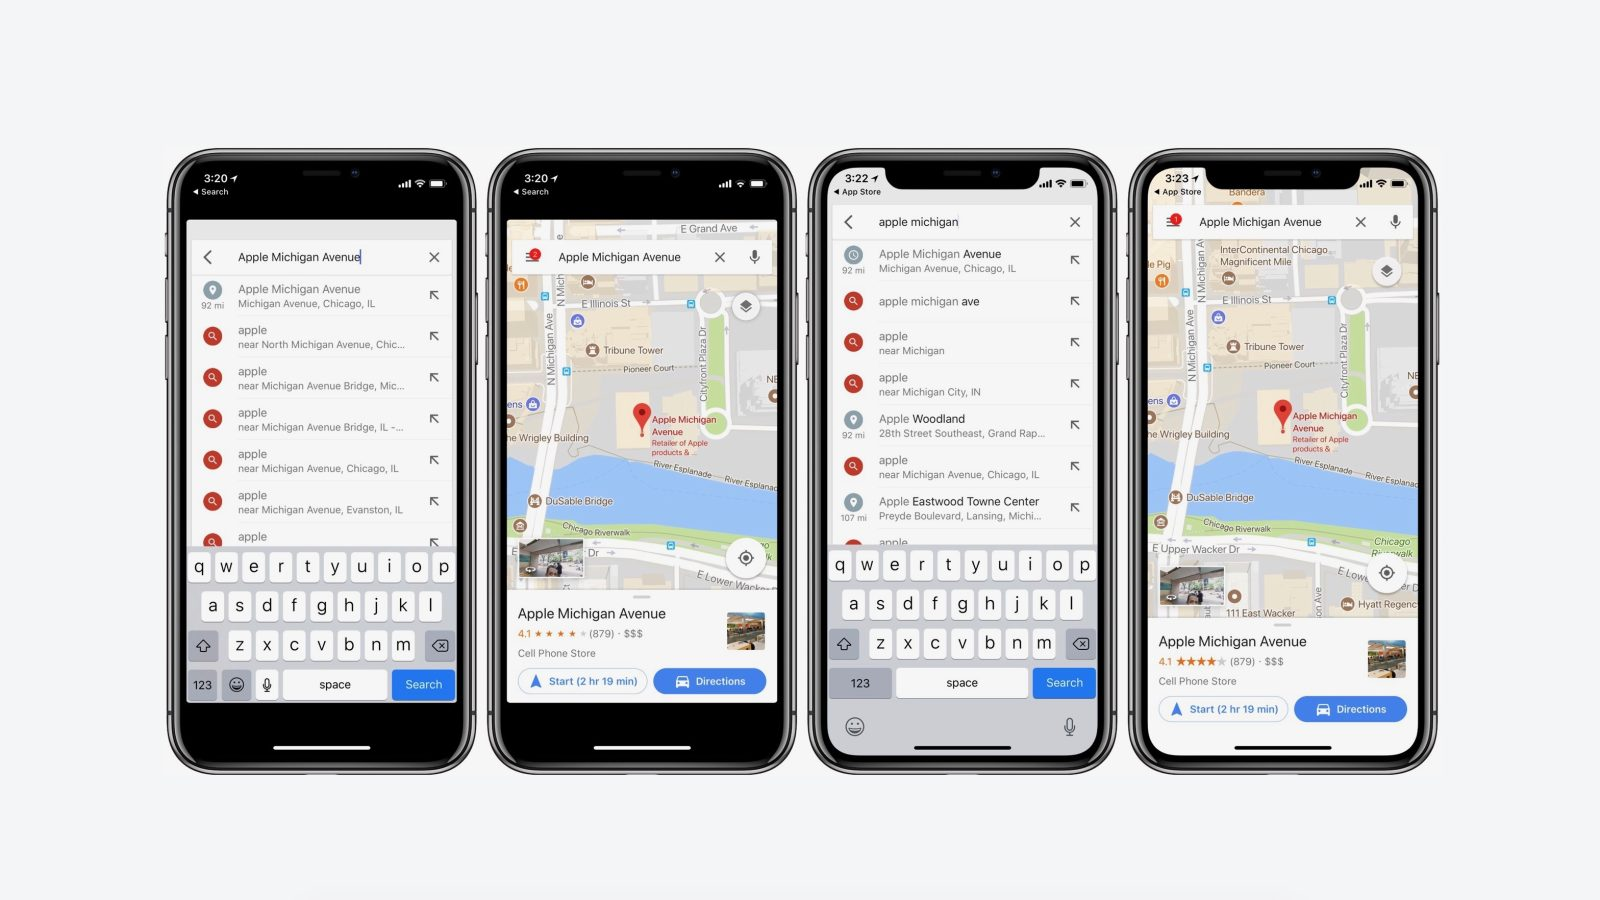 Google Maps For Ios Gets Update With Iphone X Support